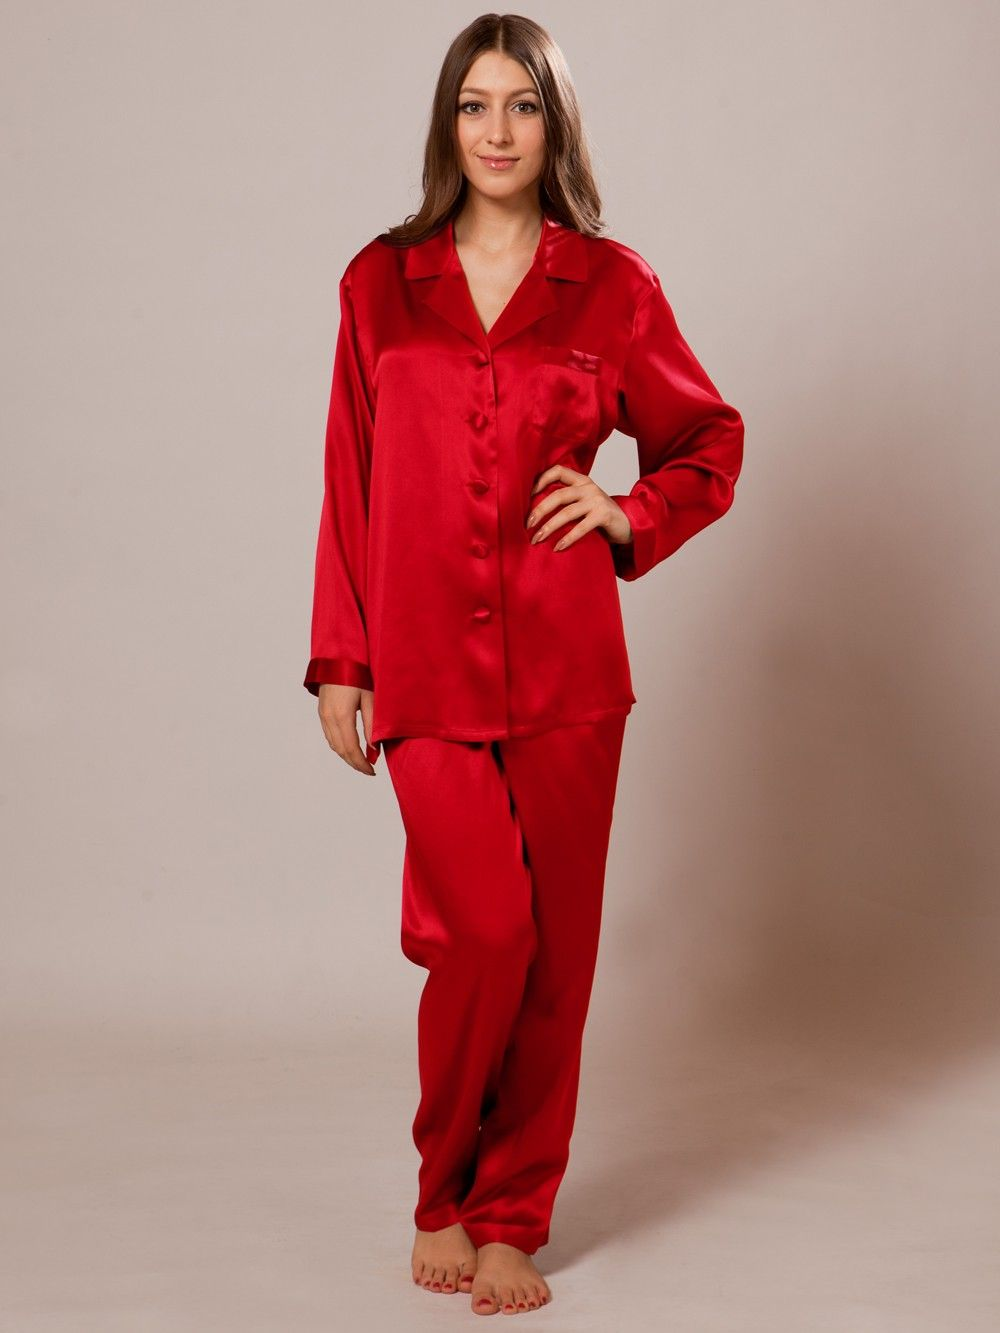 6f7e8ab95510 Shop cherry red silk pajama set with long sleeves for summer online. Made  of 22 mm 100% Mulberry silk.